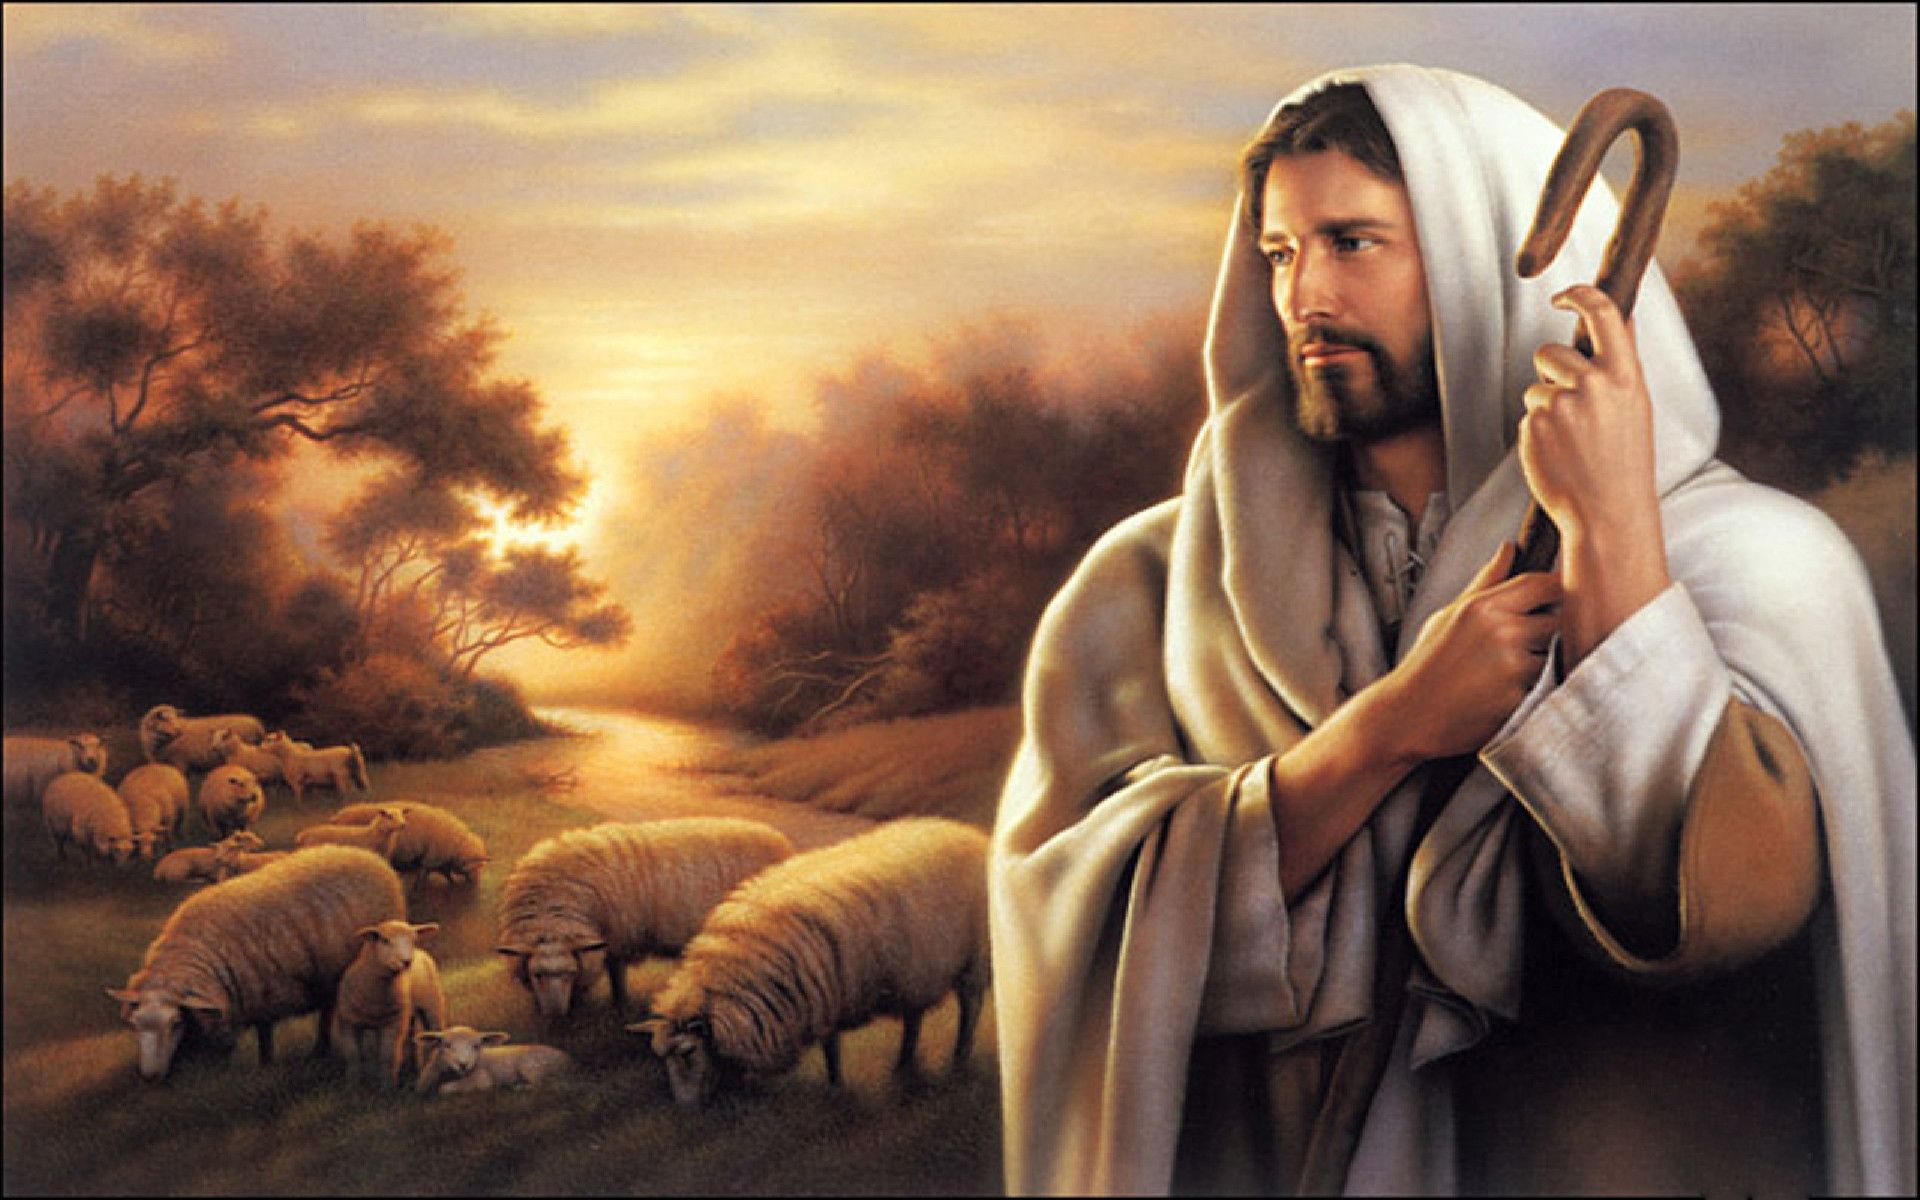 Pictures of Jesus – Cool Wallpaper Choices